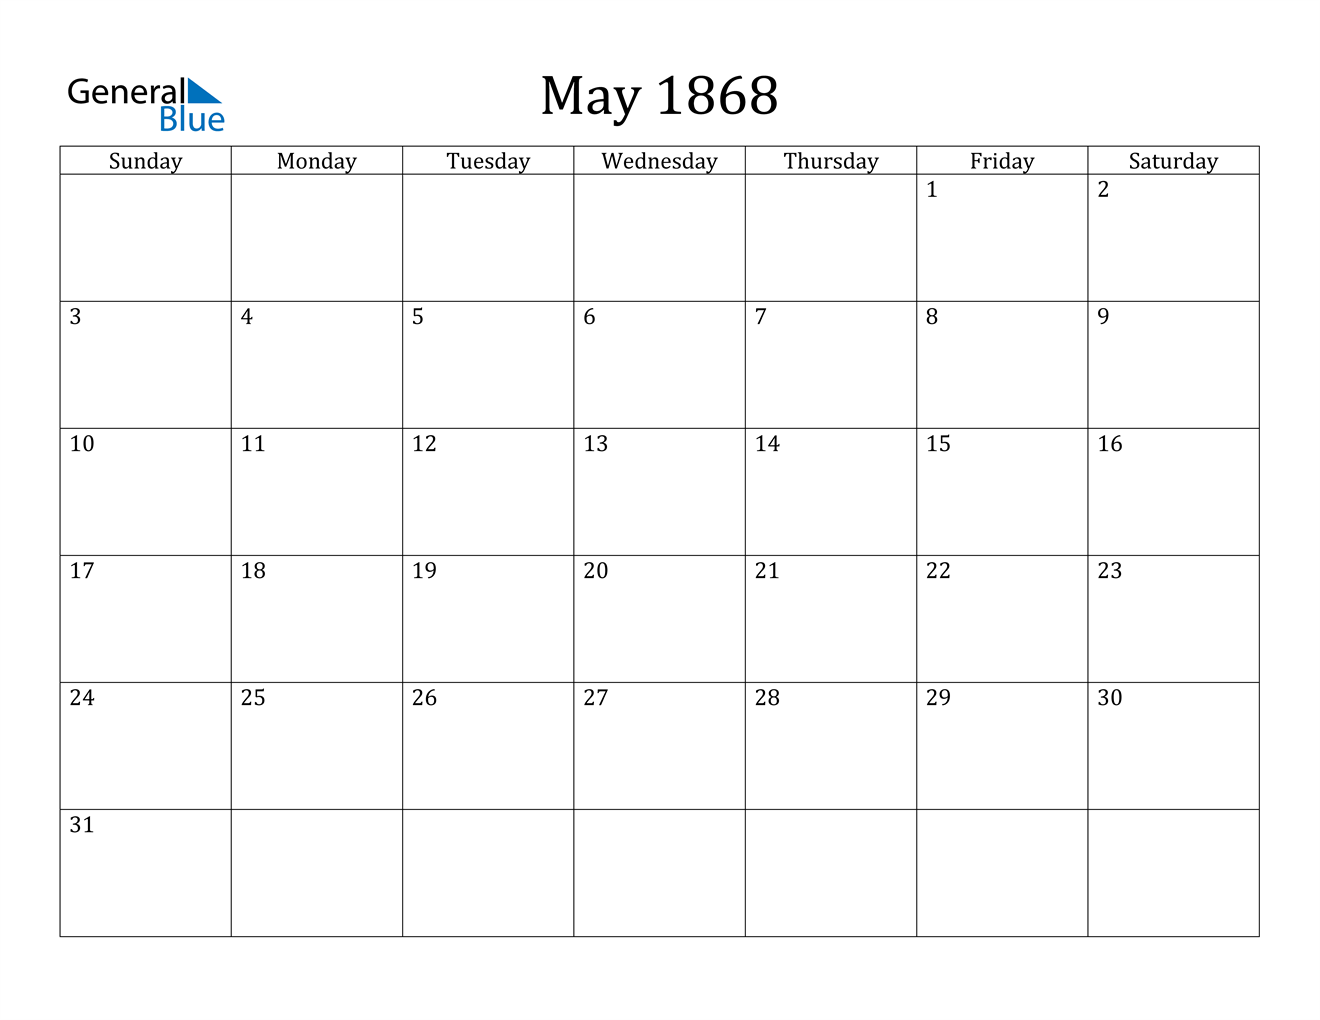 Image of May 1868 Calendar